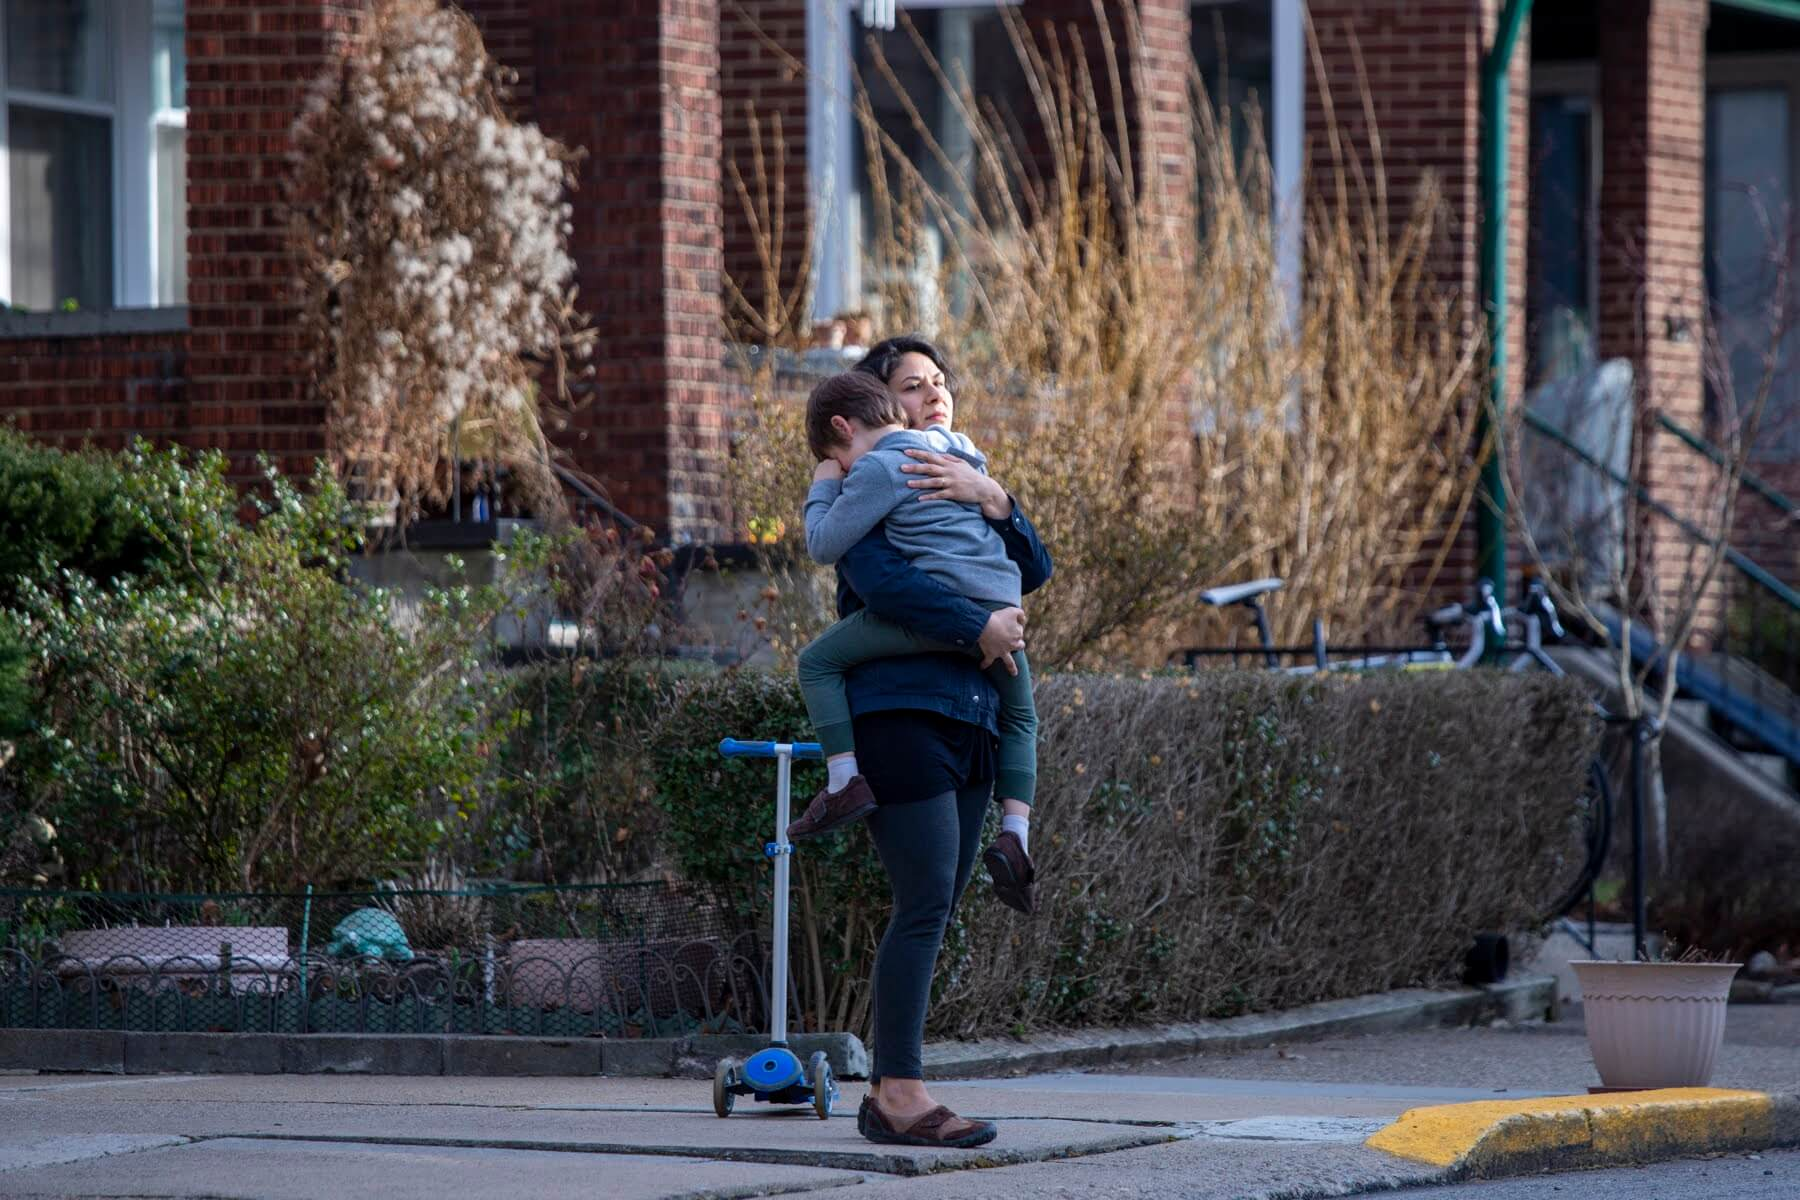 Rachel Masilamani and her son Malcolm in her neighborhood near Wilkinsburg. (Photo by Jay Manning/PublicSource)